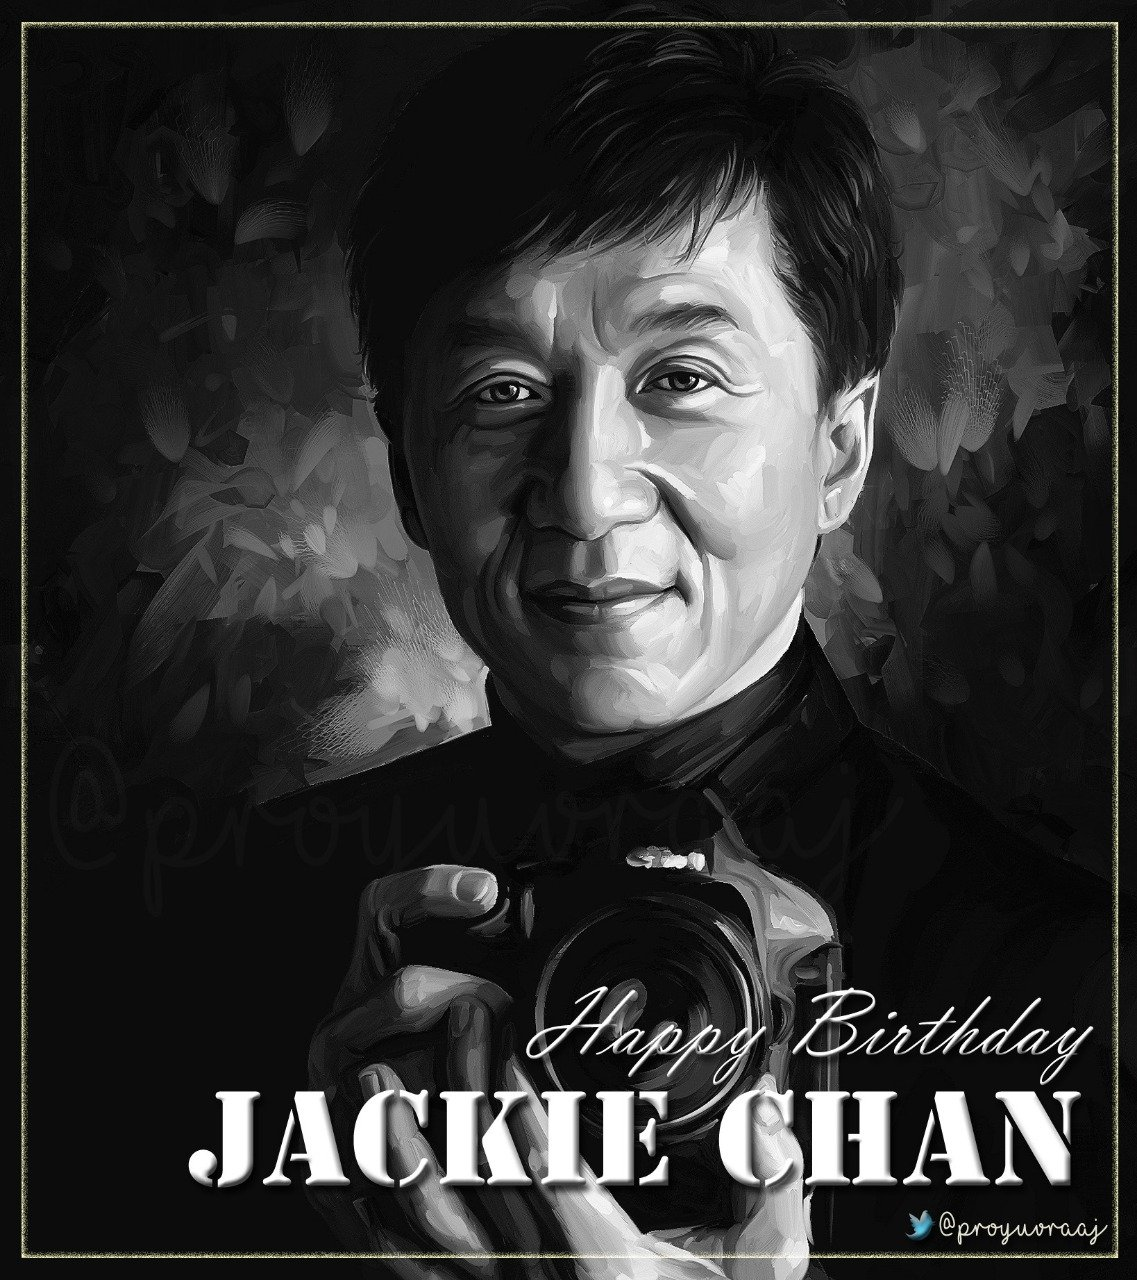 Wishing a very happy birthday to Great legendry Actor sir......